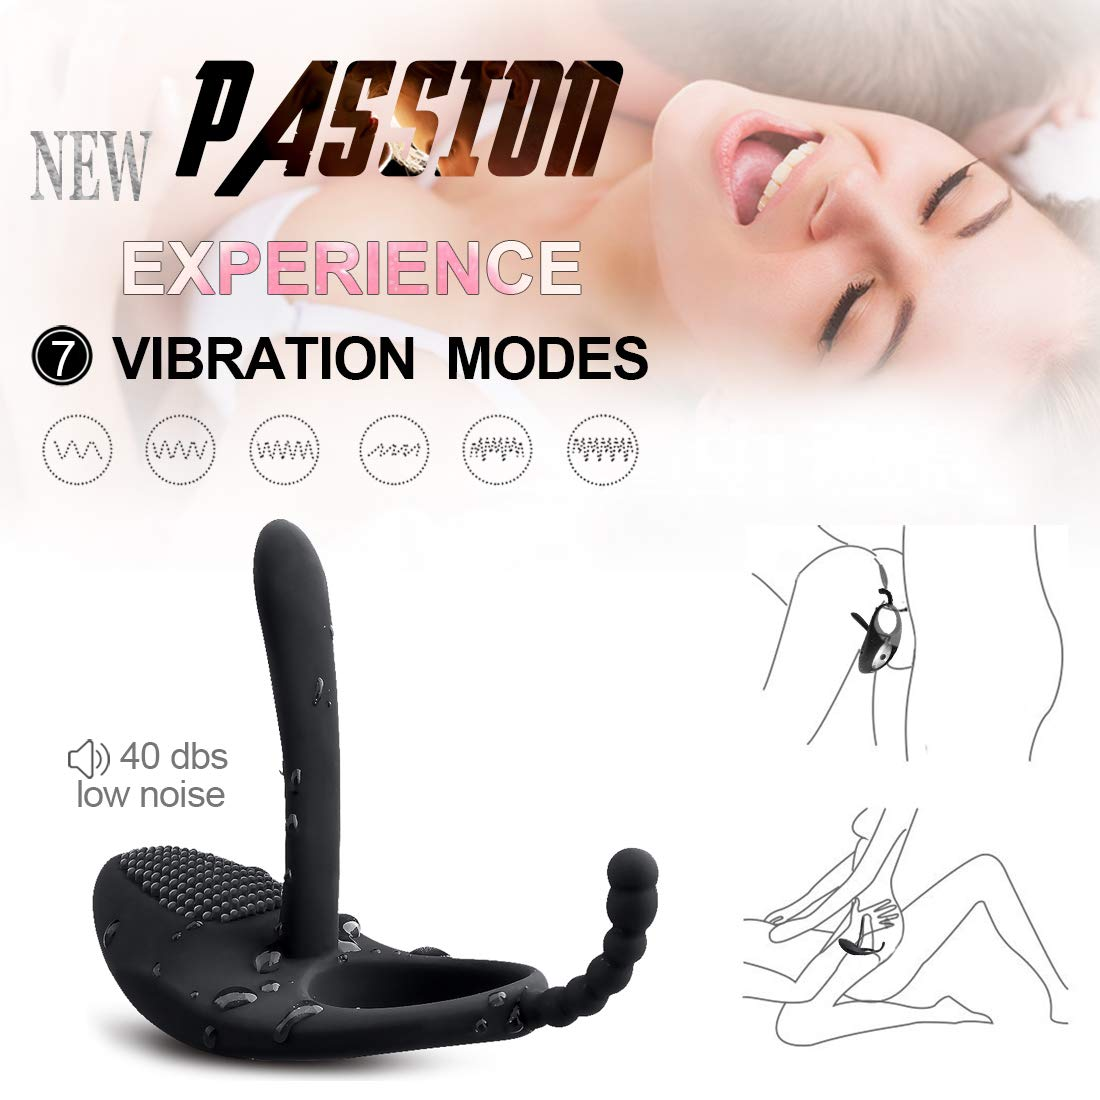 Lifelike Vibrators for male Adults Toy for men Waterproof Vibrator G Spotter Silicone Cock Six Toy for Couples T-Shirt